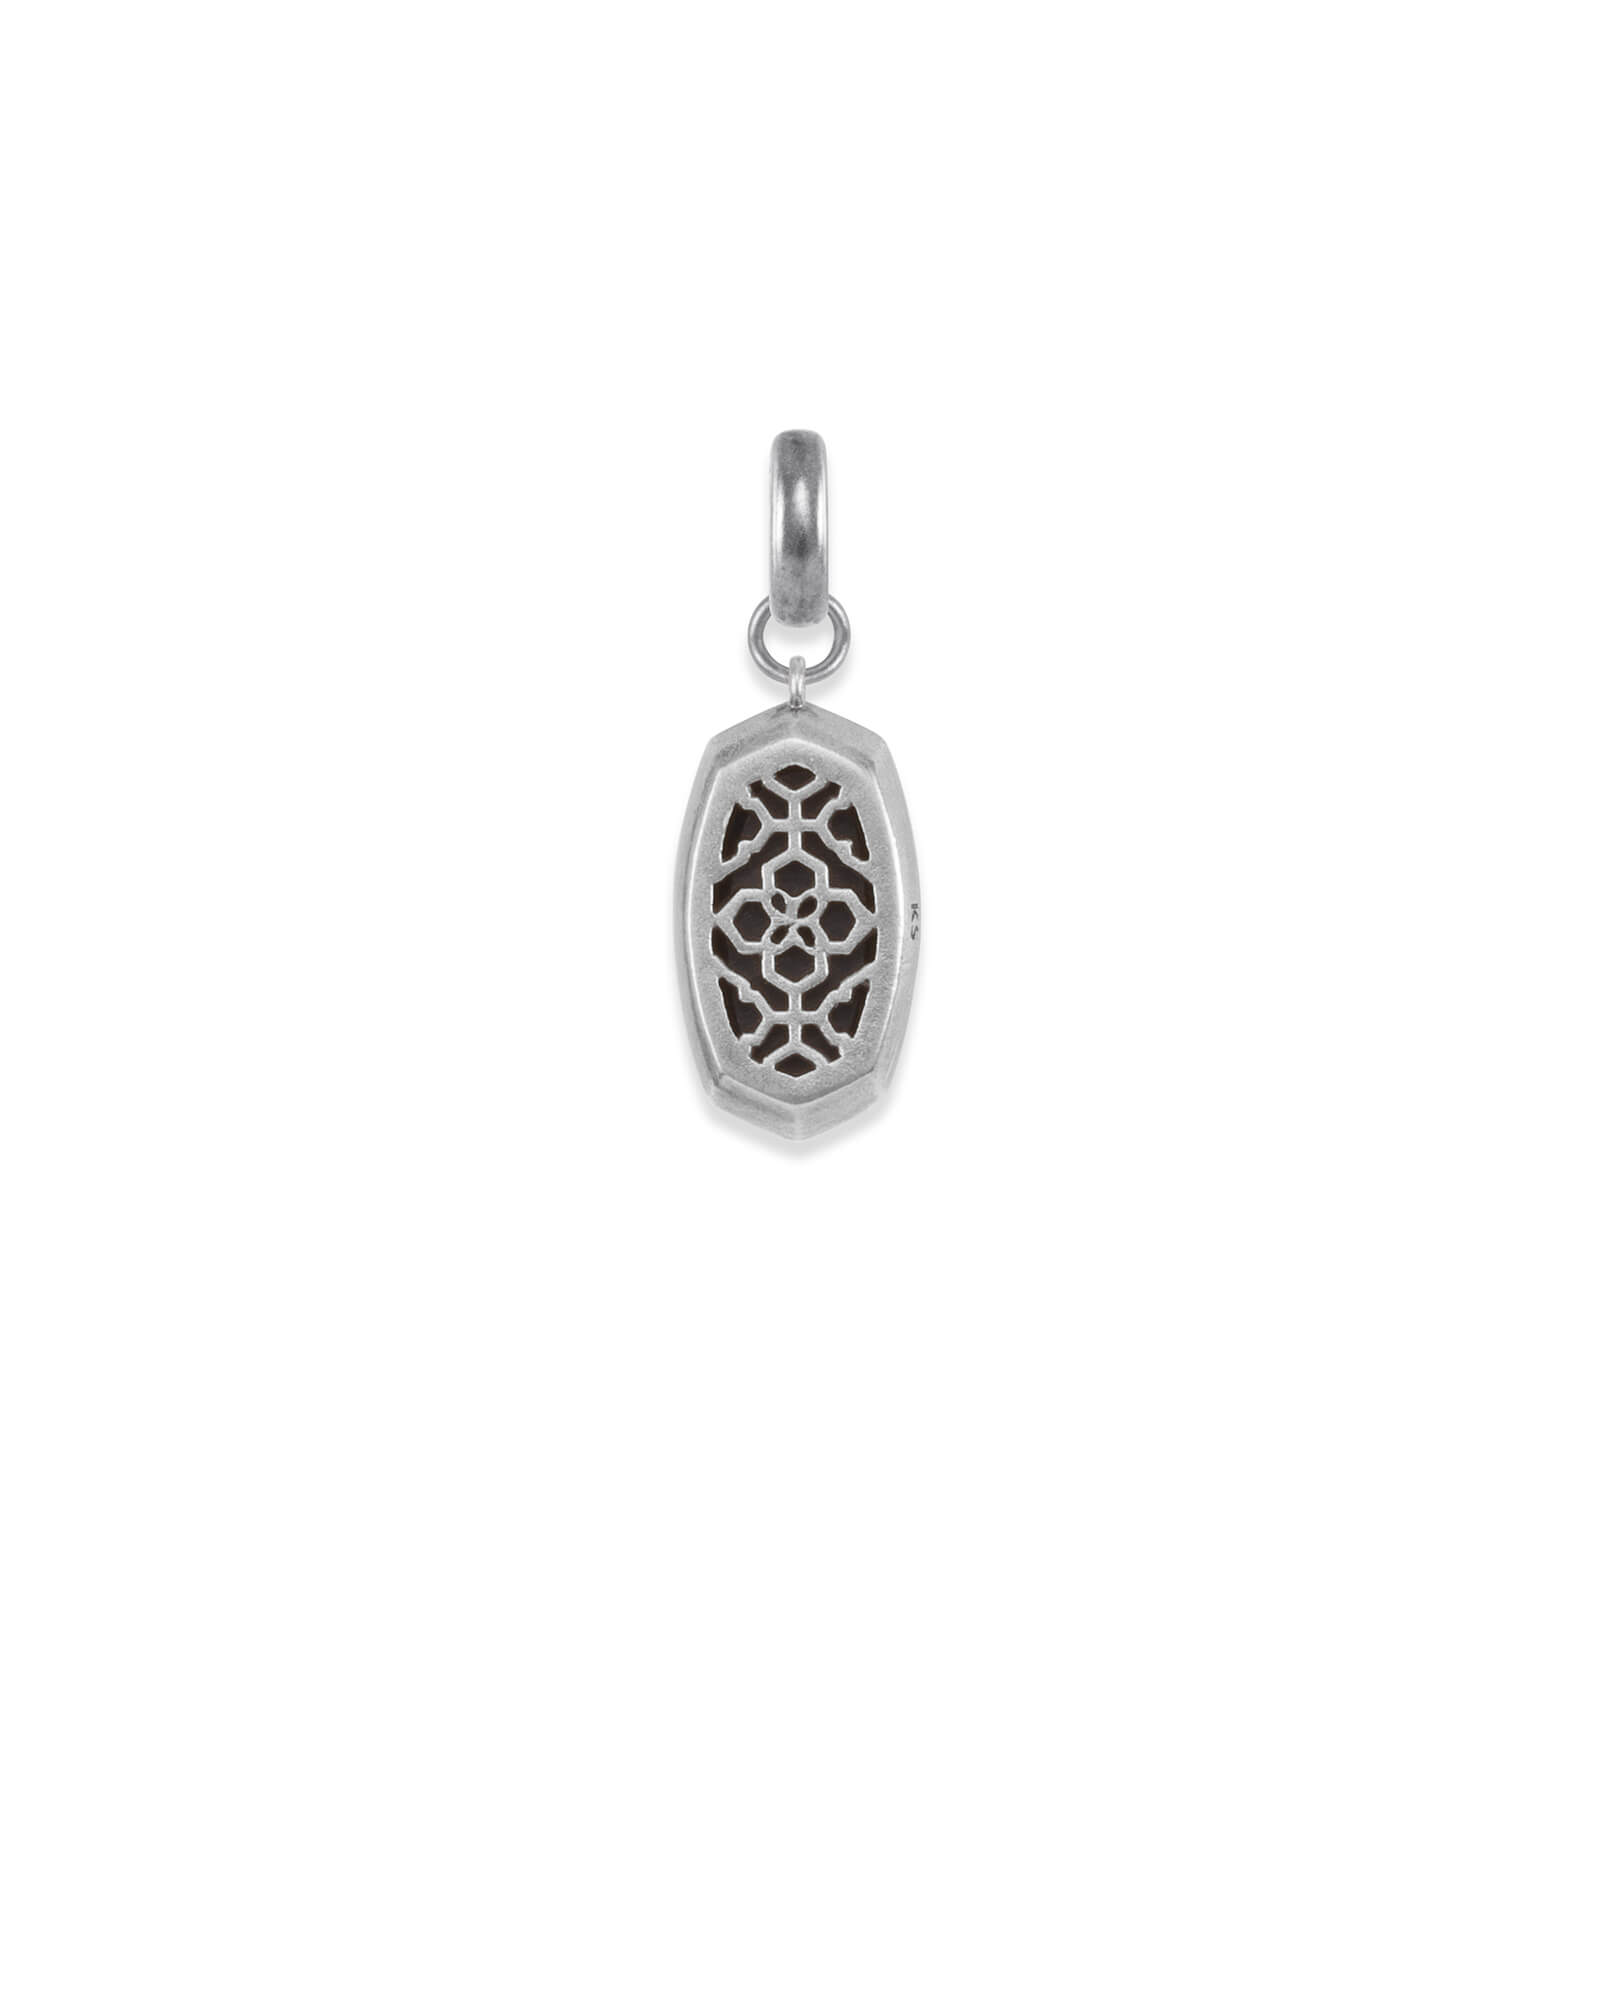 Mood Stone Charm in Vintage Silver